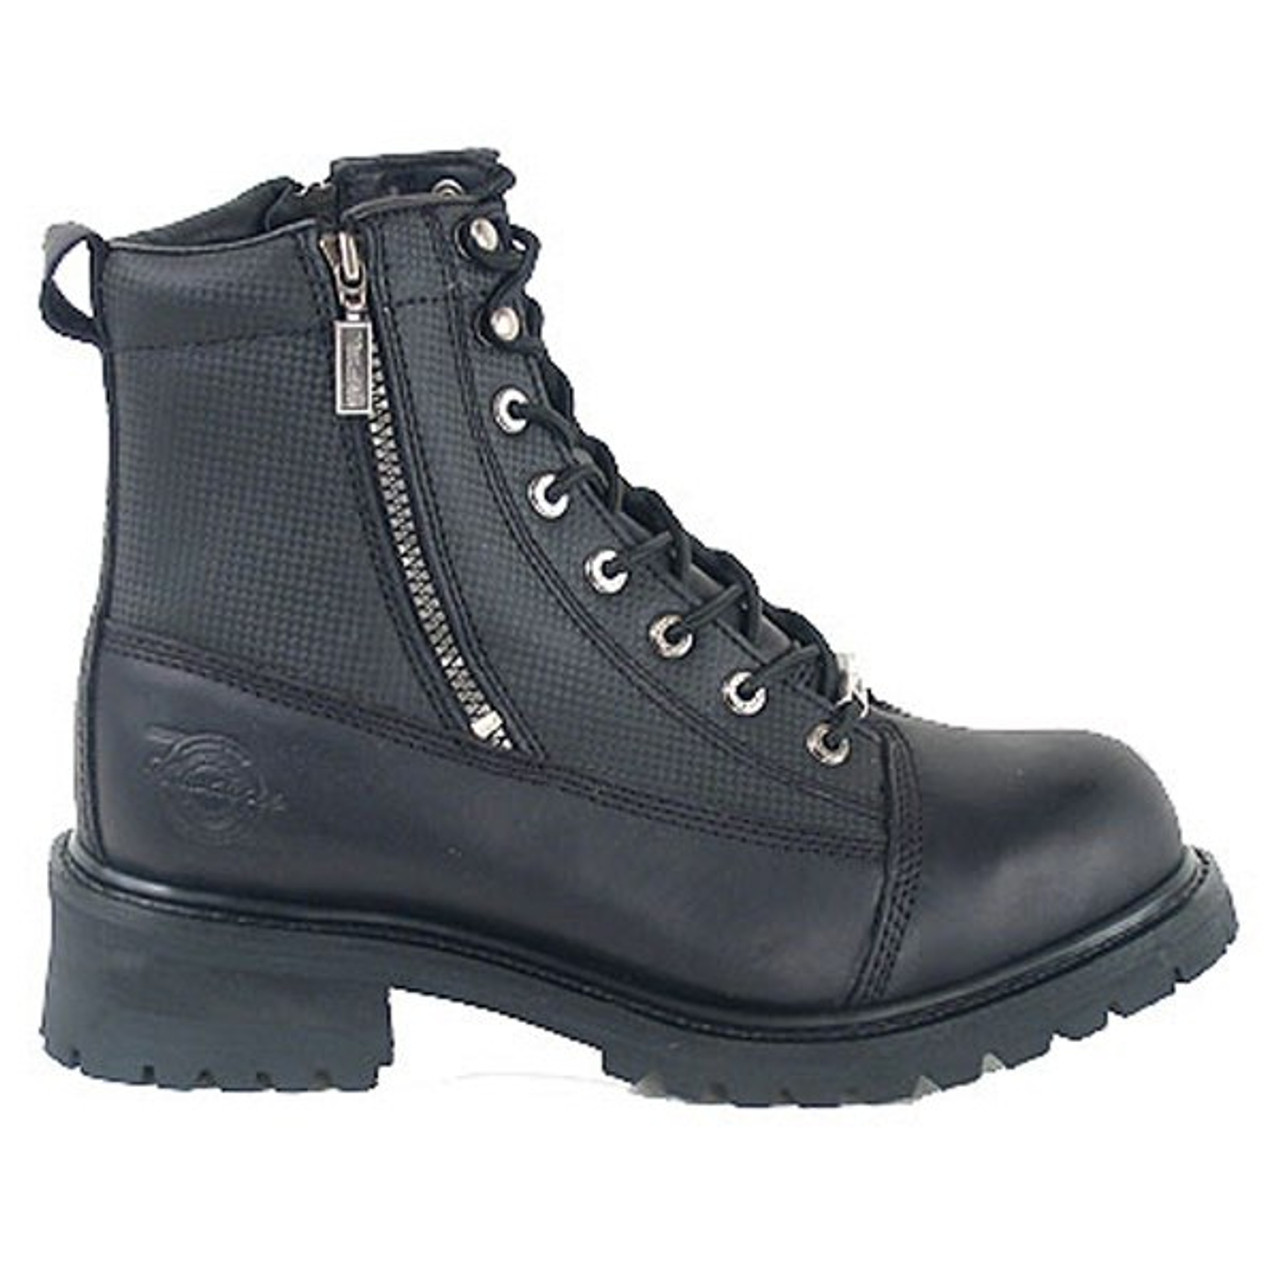 Milwaukee Motorcycle Clothing Company Accelerator Leather Mens Motorcycle Boots Black, Size 8.5EE